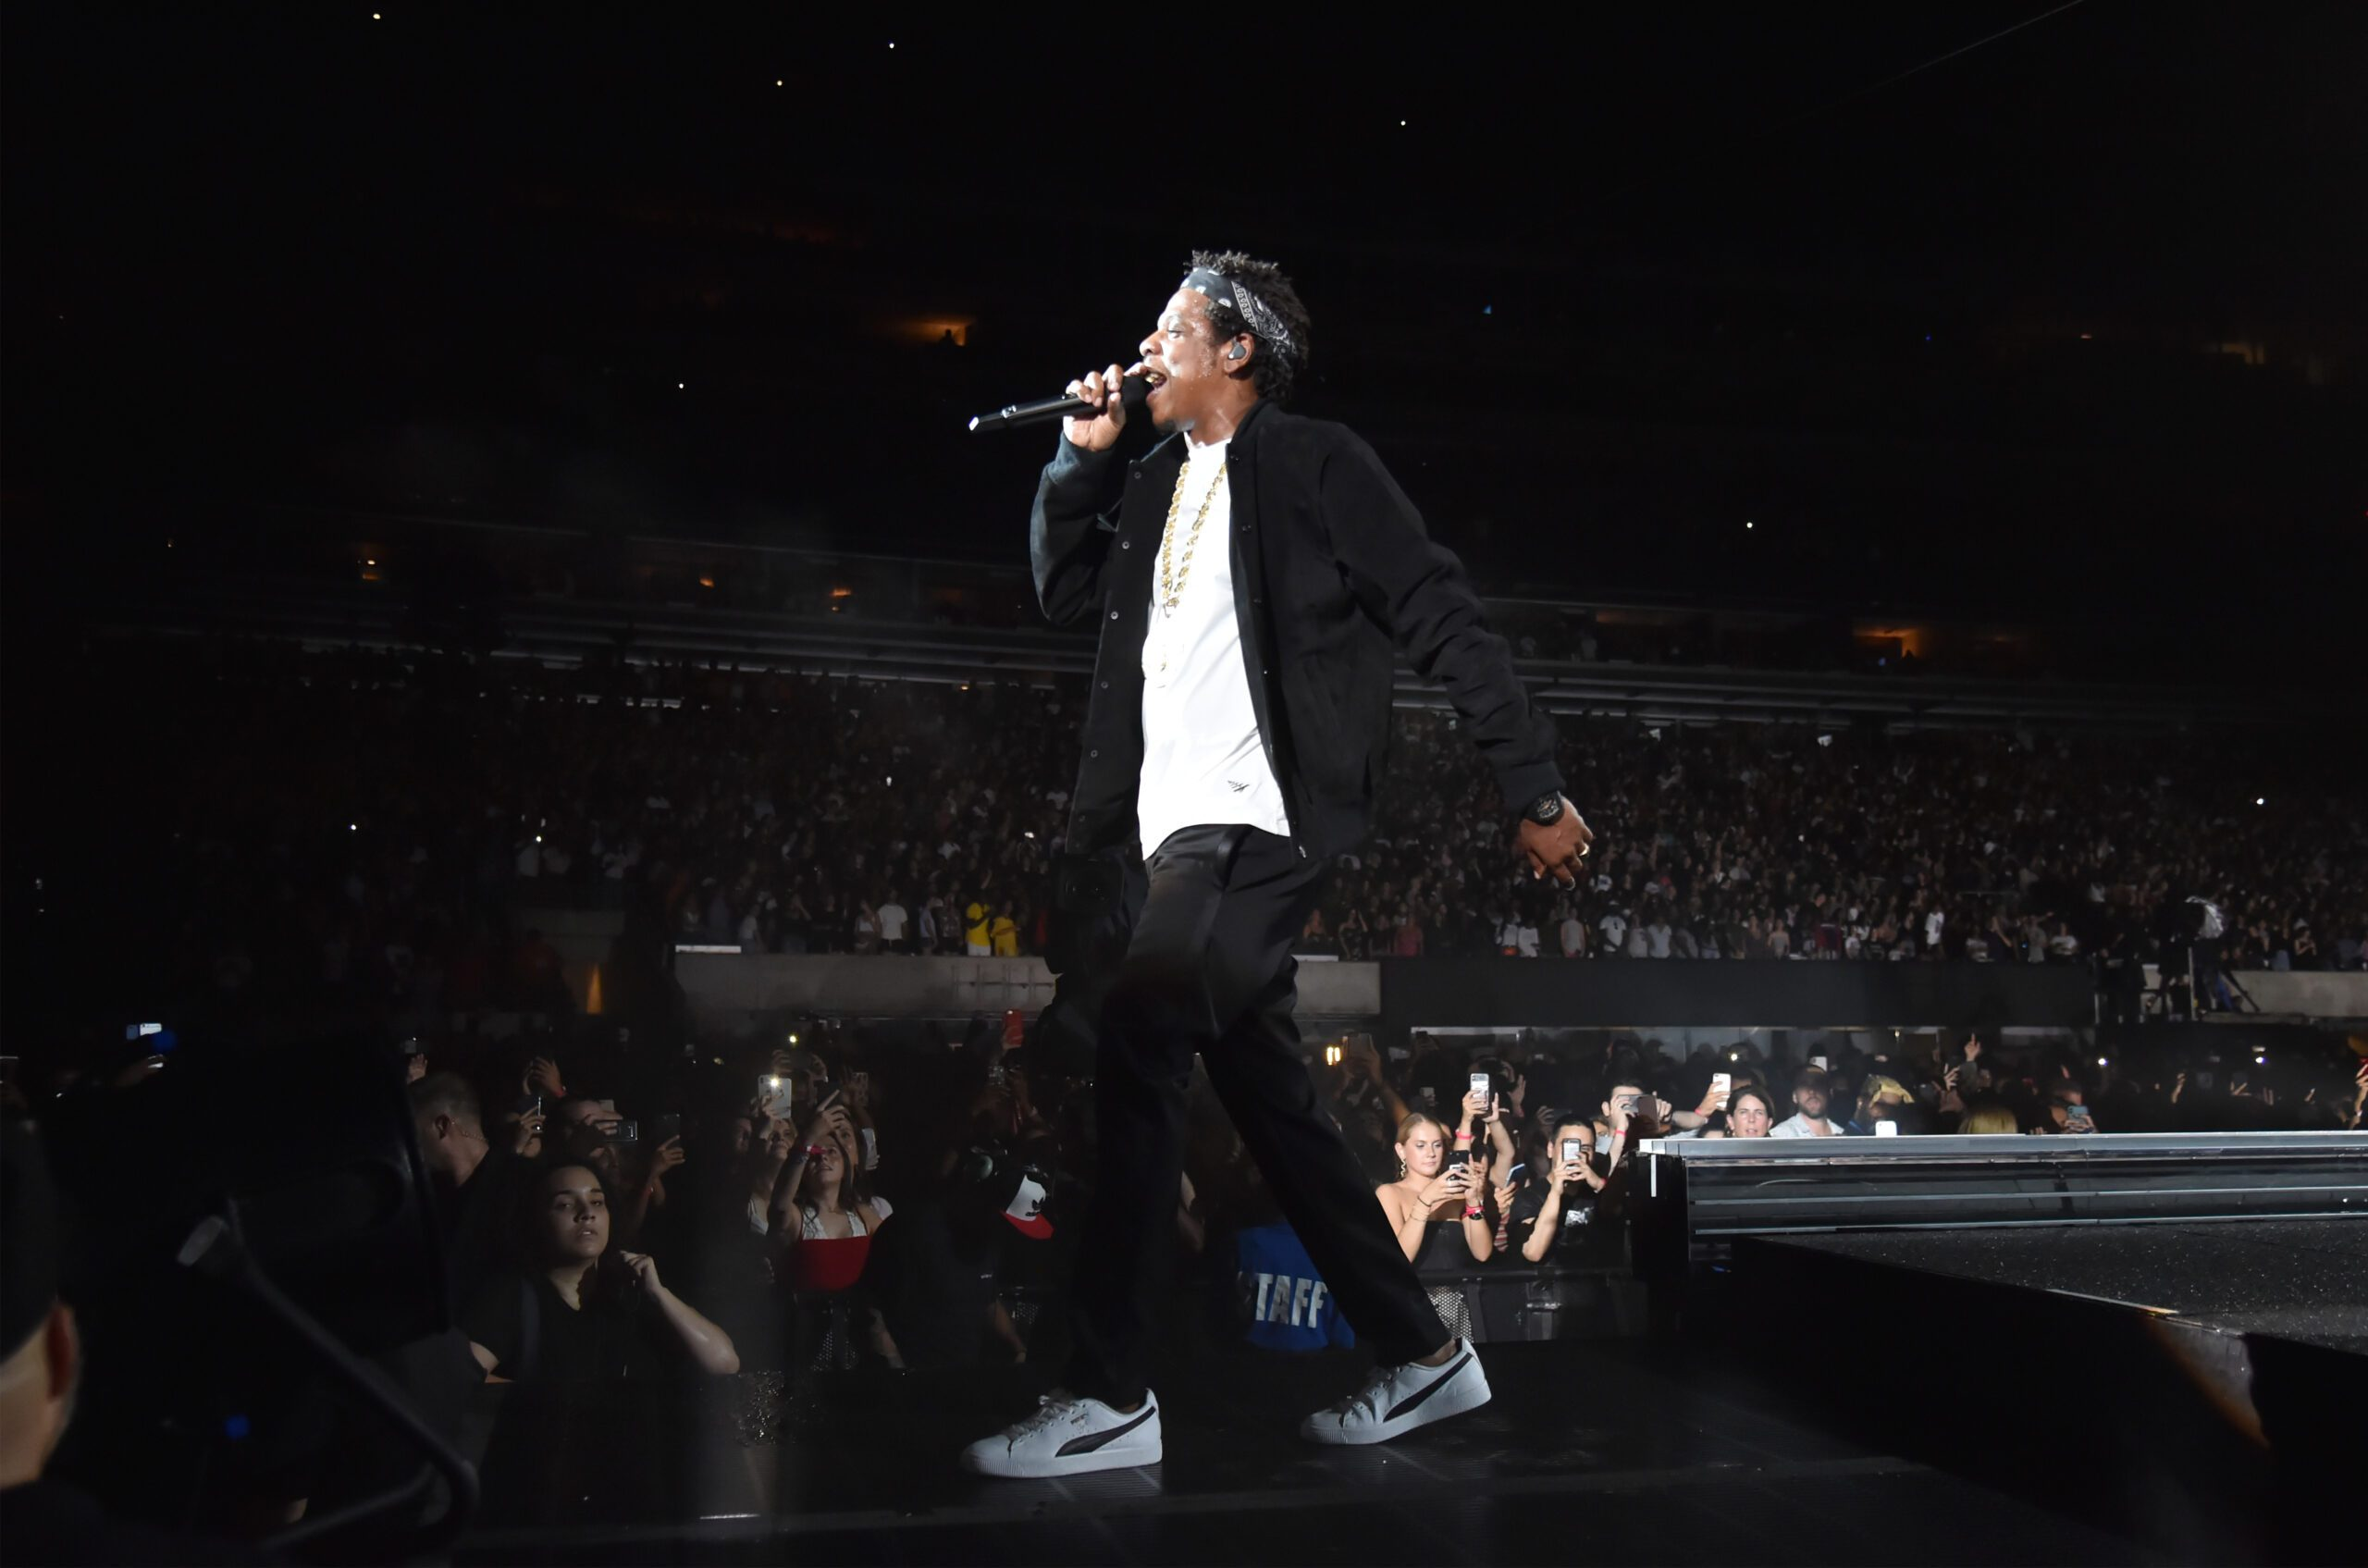 Square, Inc. to Buy Majority of Tidal and Put Jay-Z on Board - snopes